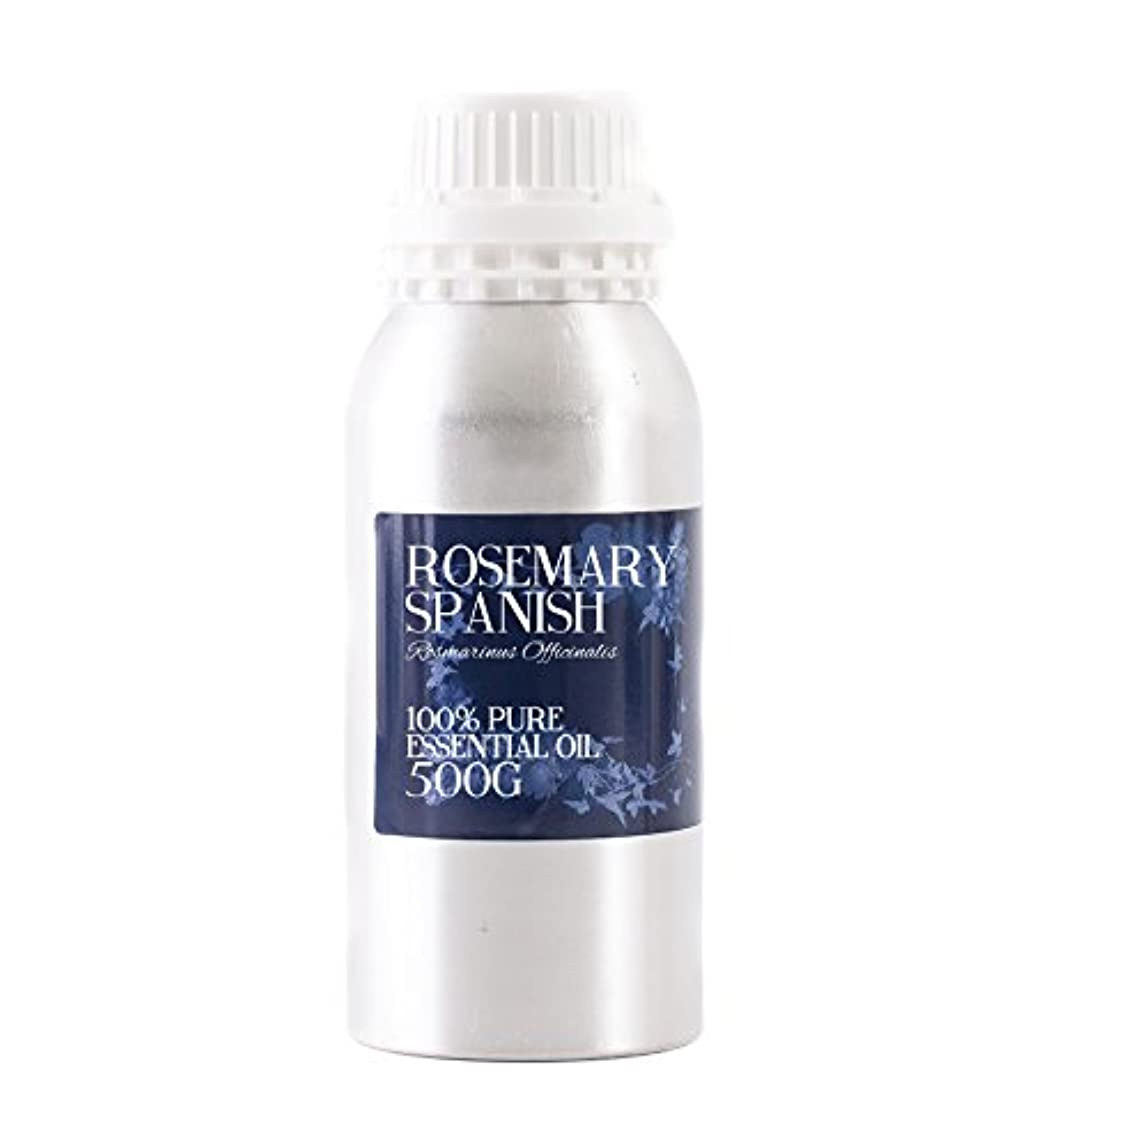 Mystic Moments | Rosemary Spanish Essential Oil - 500g - 100% Pure